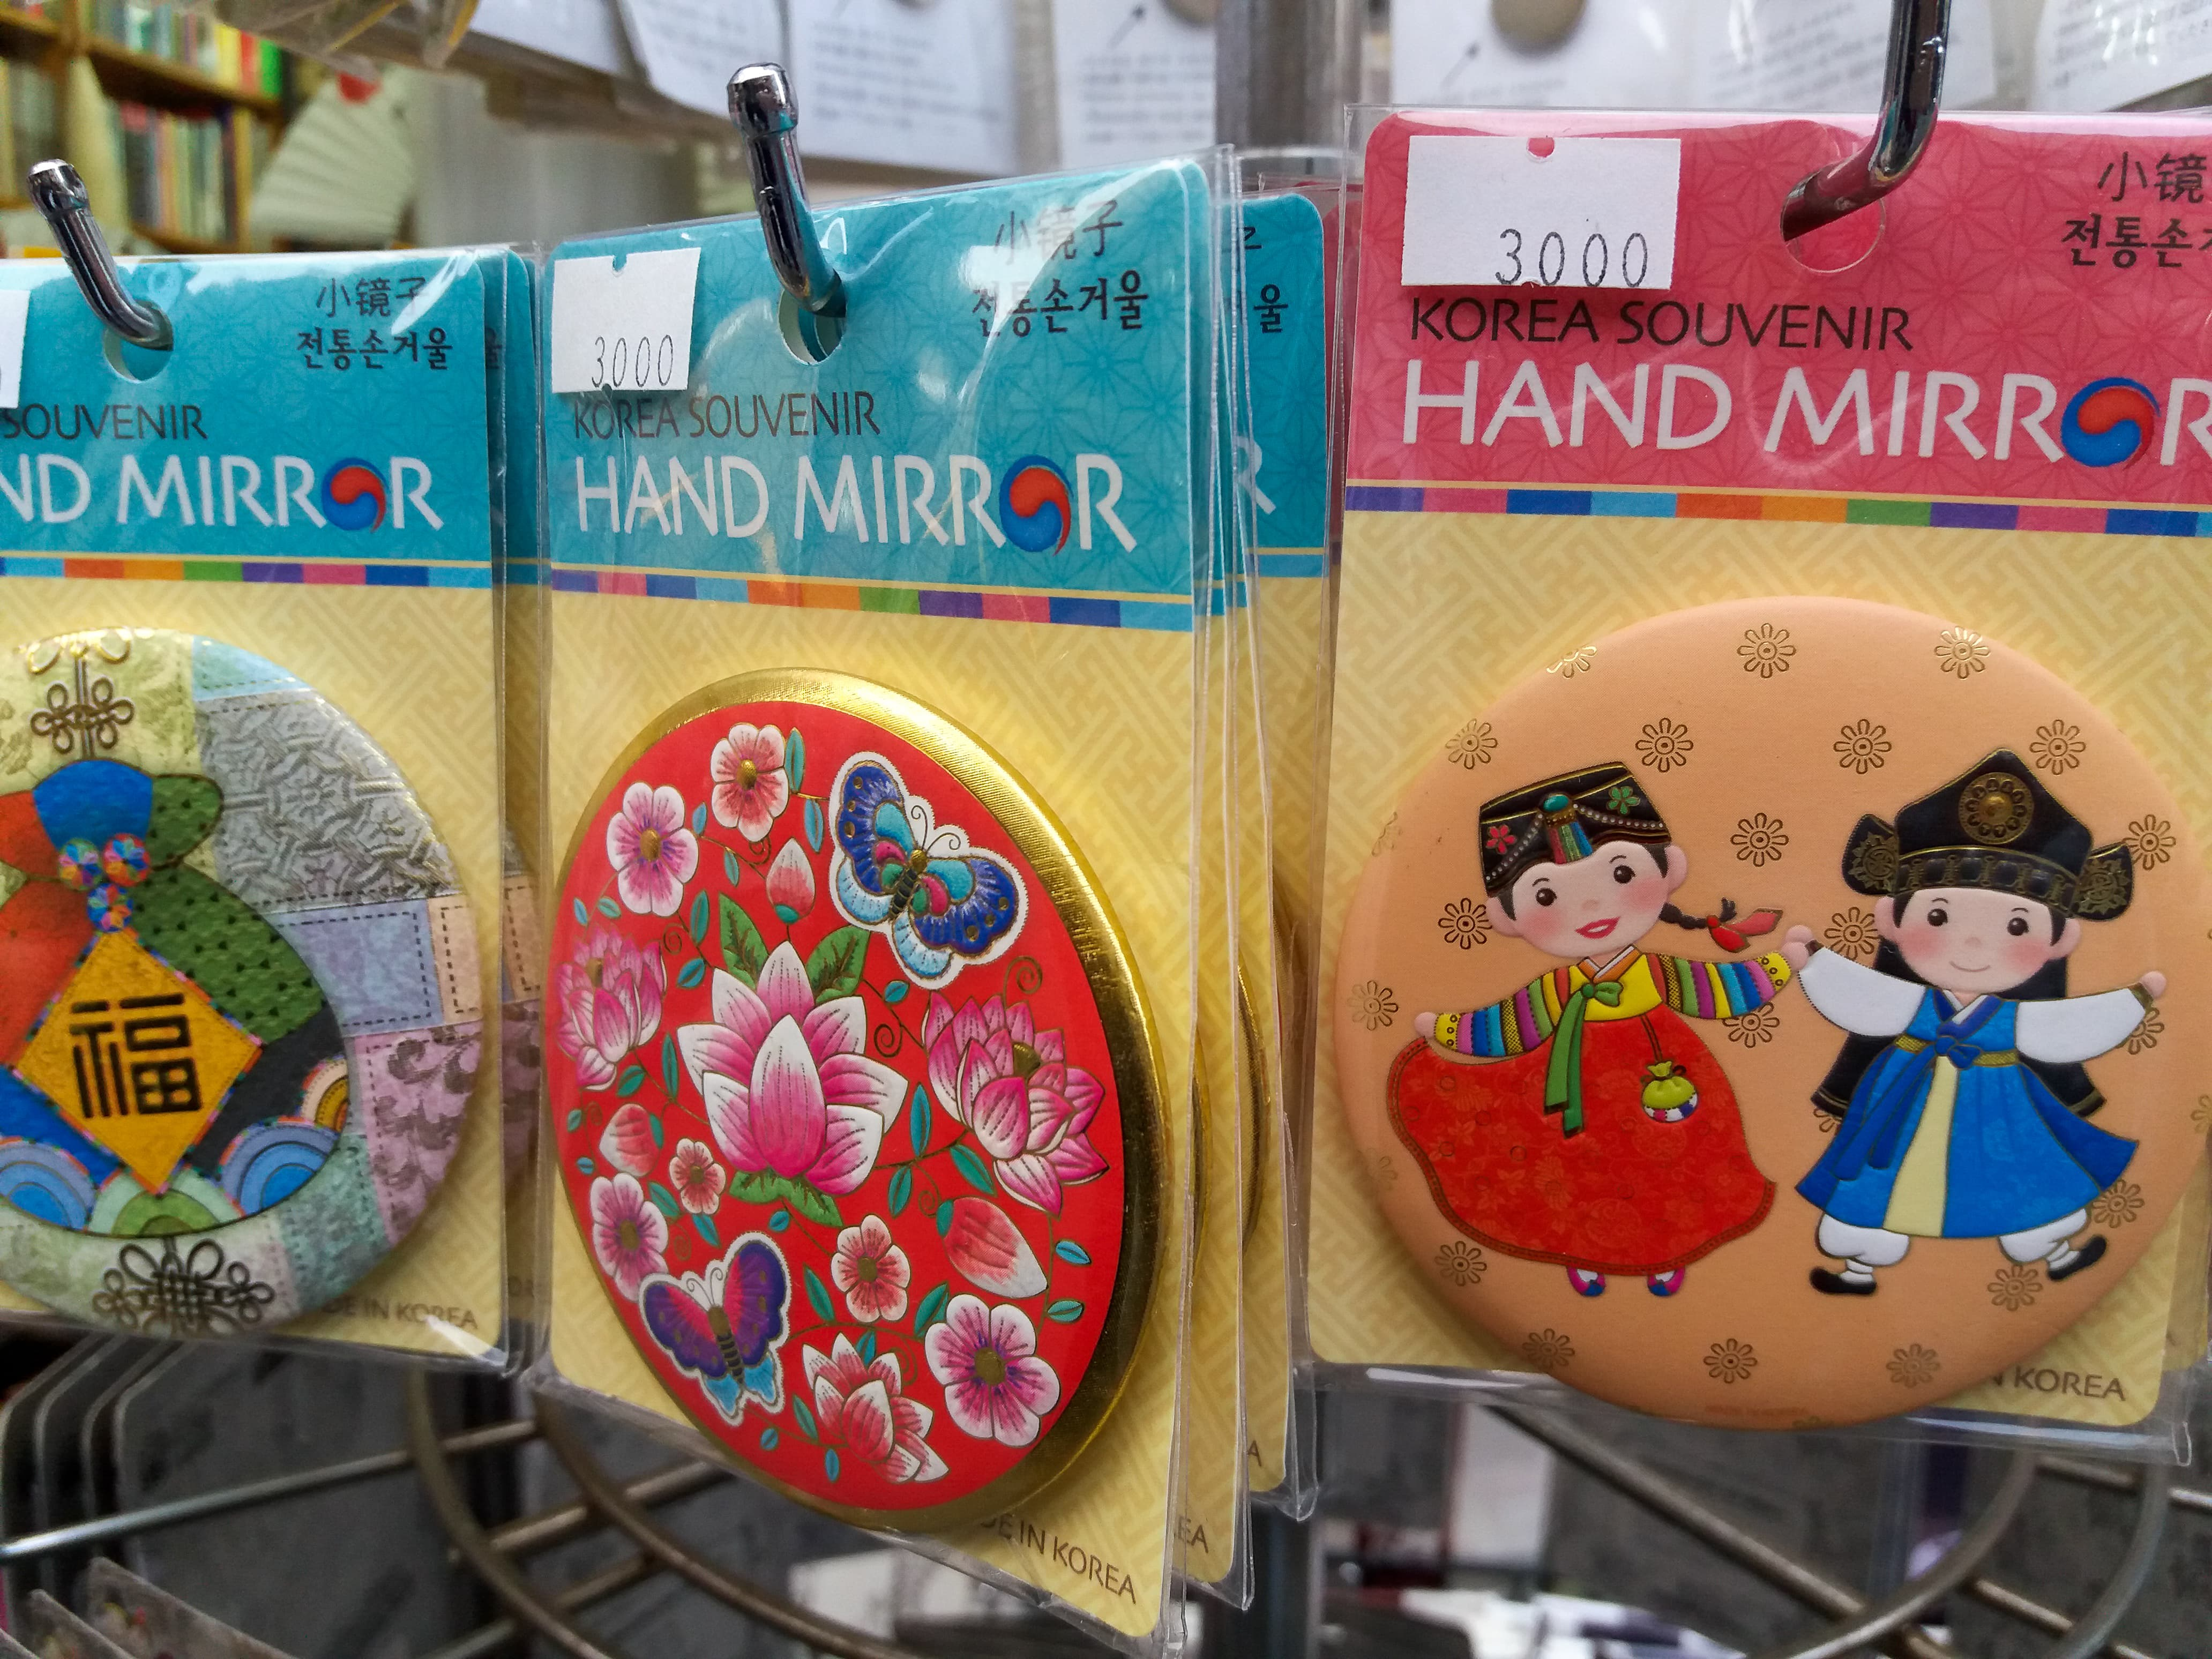 Korean hand mirrors